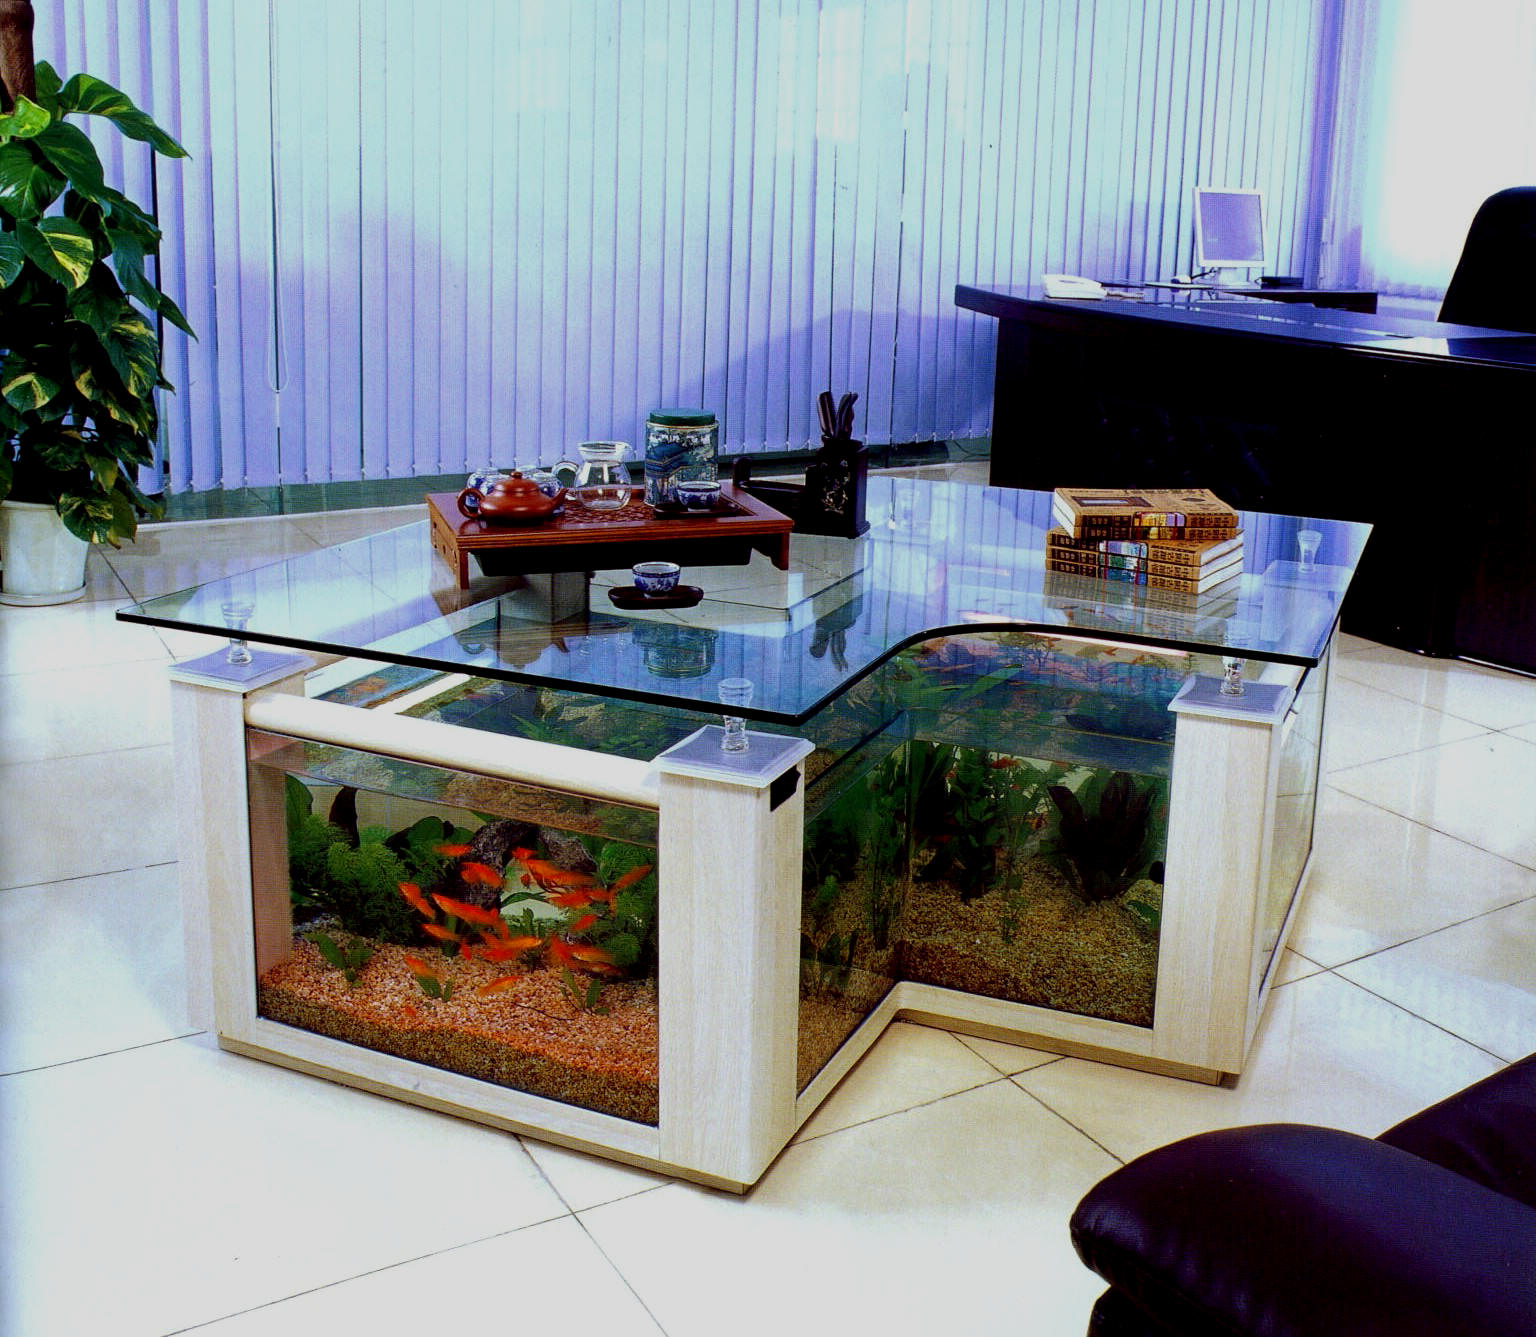 Home Design Ideas For Dogs: Aquarium Coffee Table For Sale